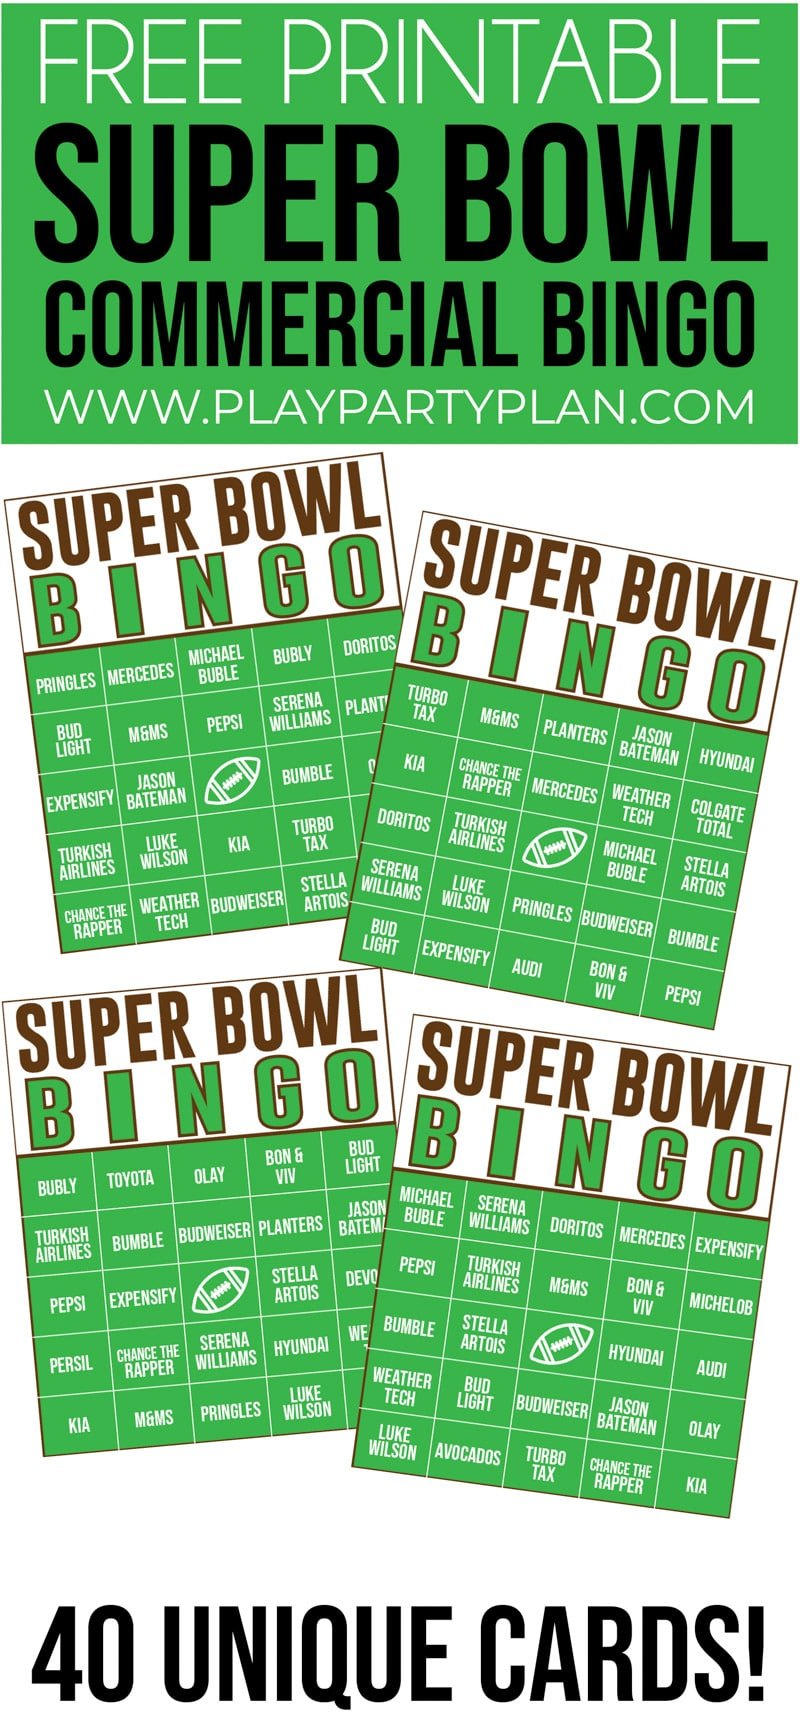 graphic relating to Super Bowl Party Games Printable called The Least difficult Tremendous Bowl Bingo Activity - 2019 Tremendous Bowl Business